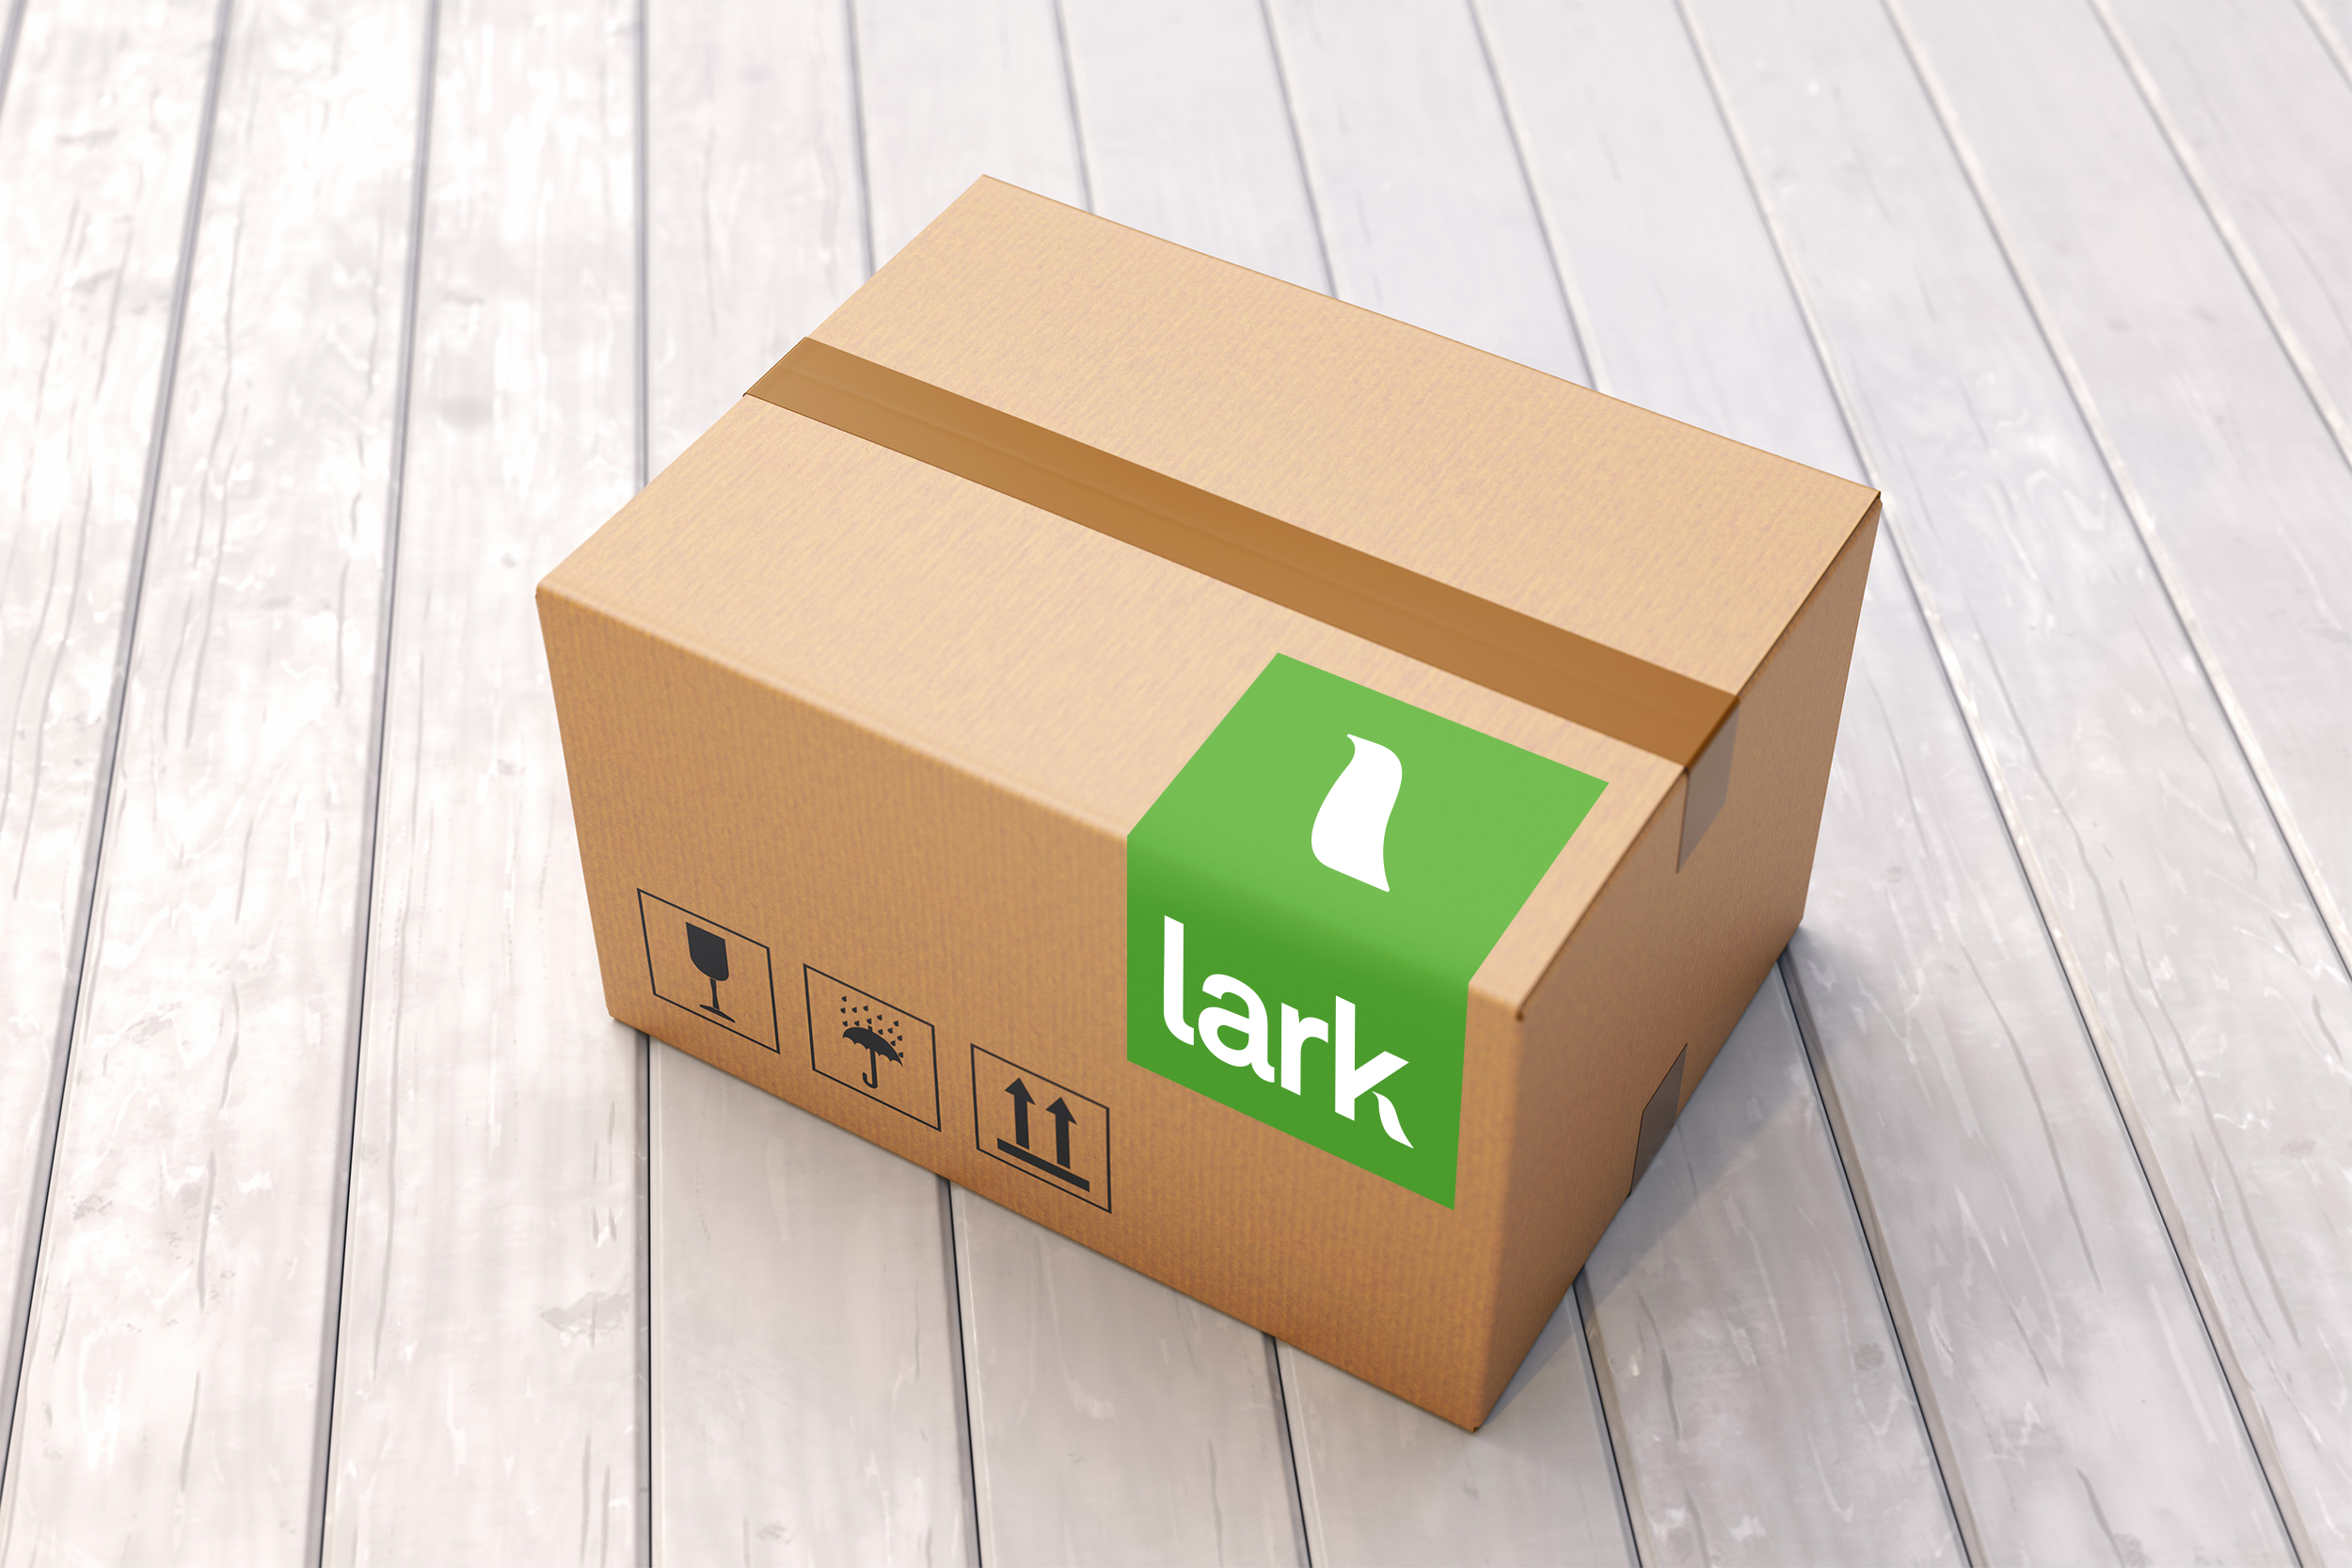 Get your free Lark Smartscale and Fitbit if you qualify.